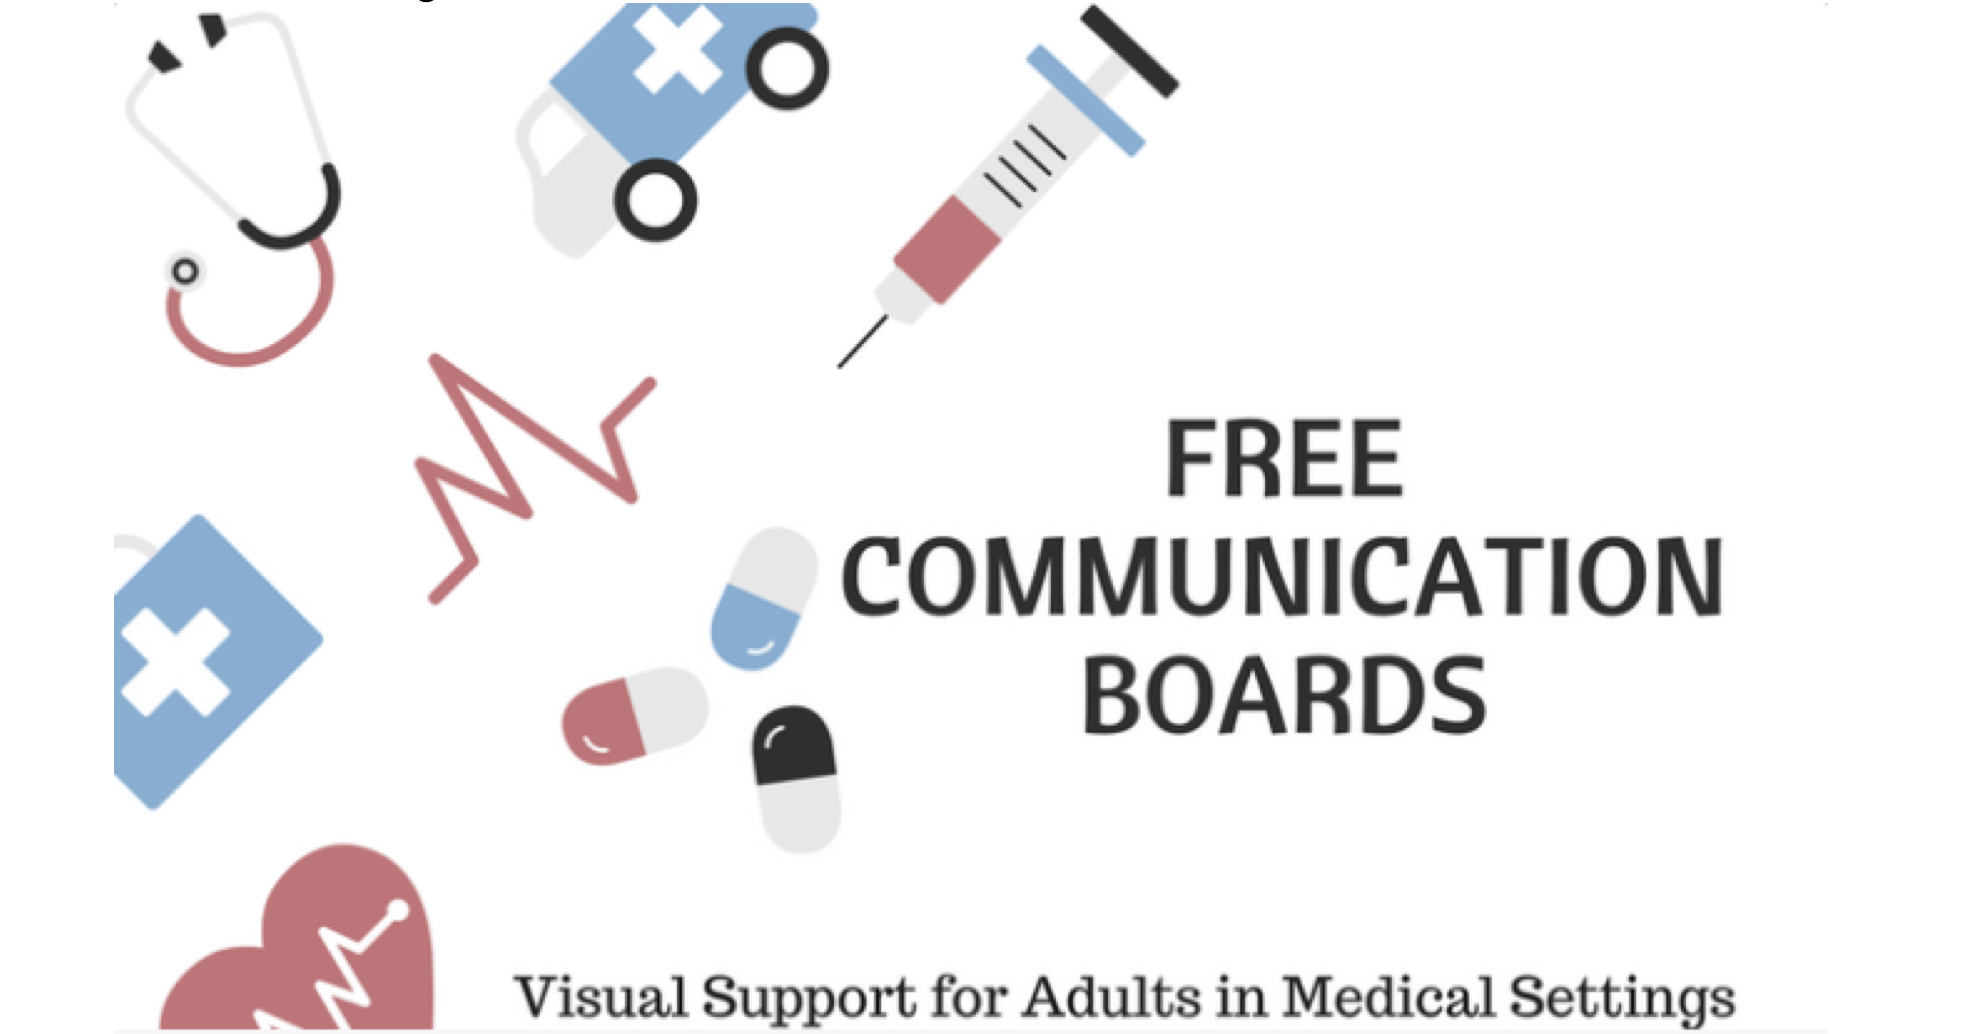 Downloadable Communication Boards For Adults In Health Care Settings - Free Printable Communication Boards For Adults